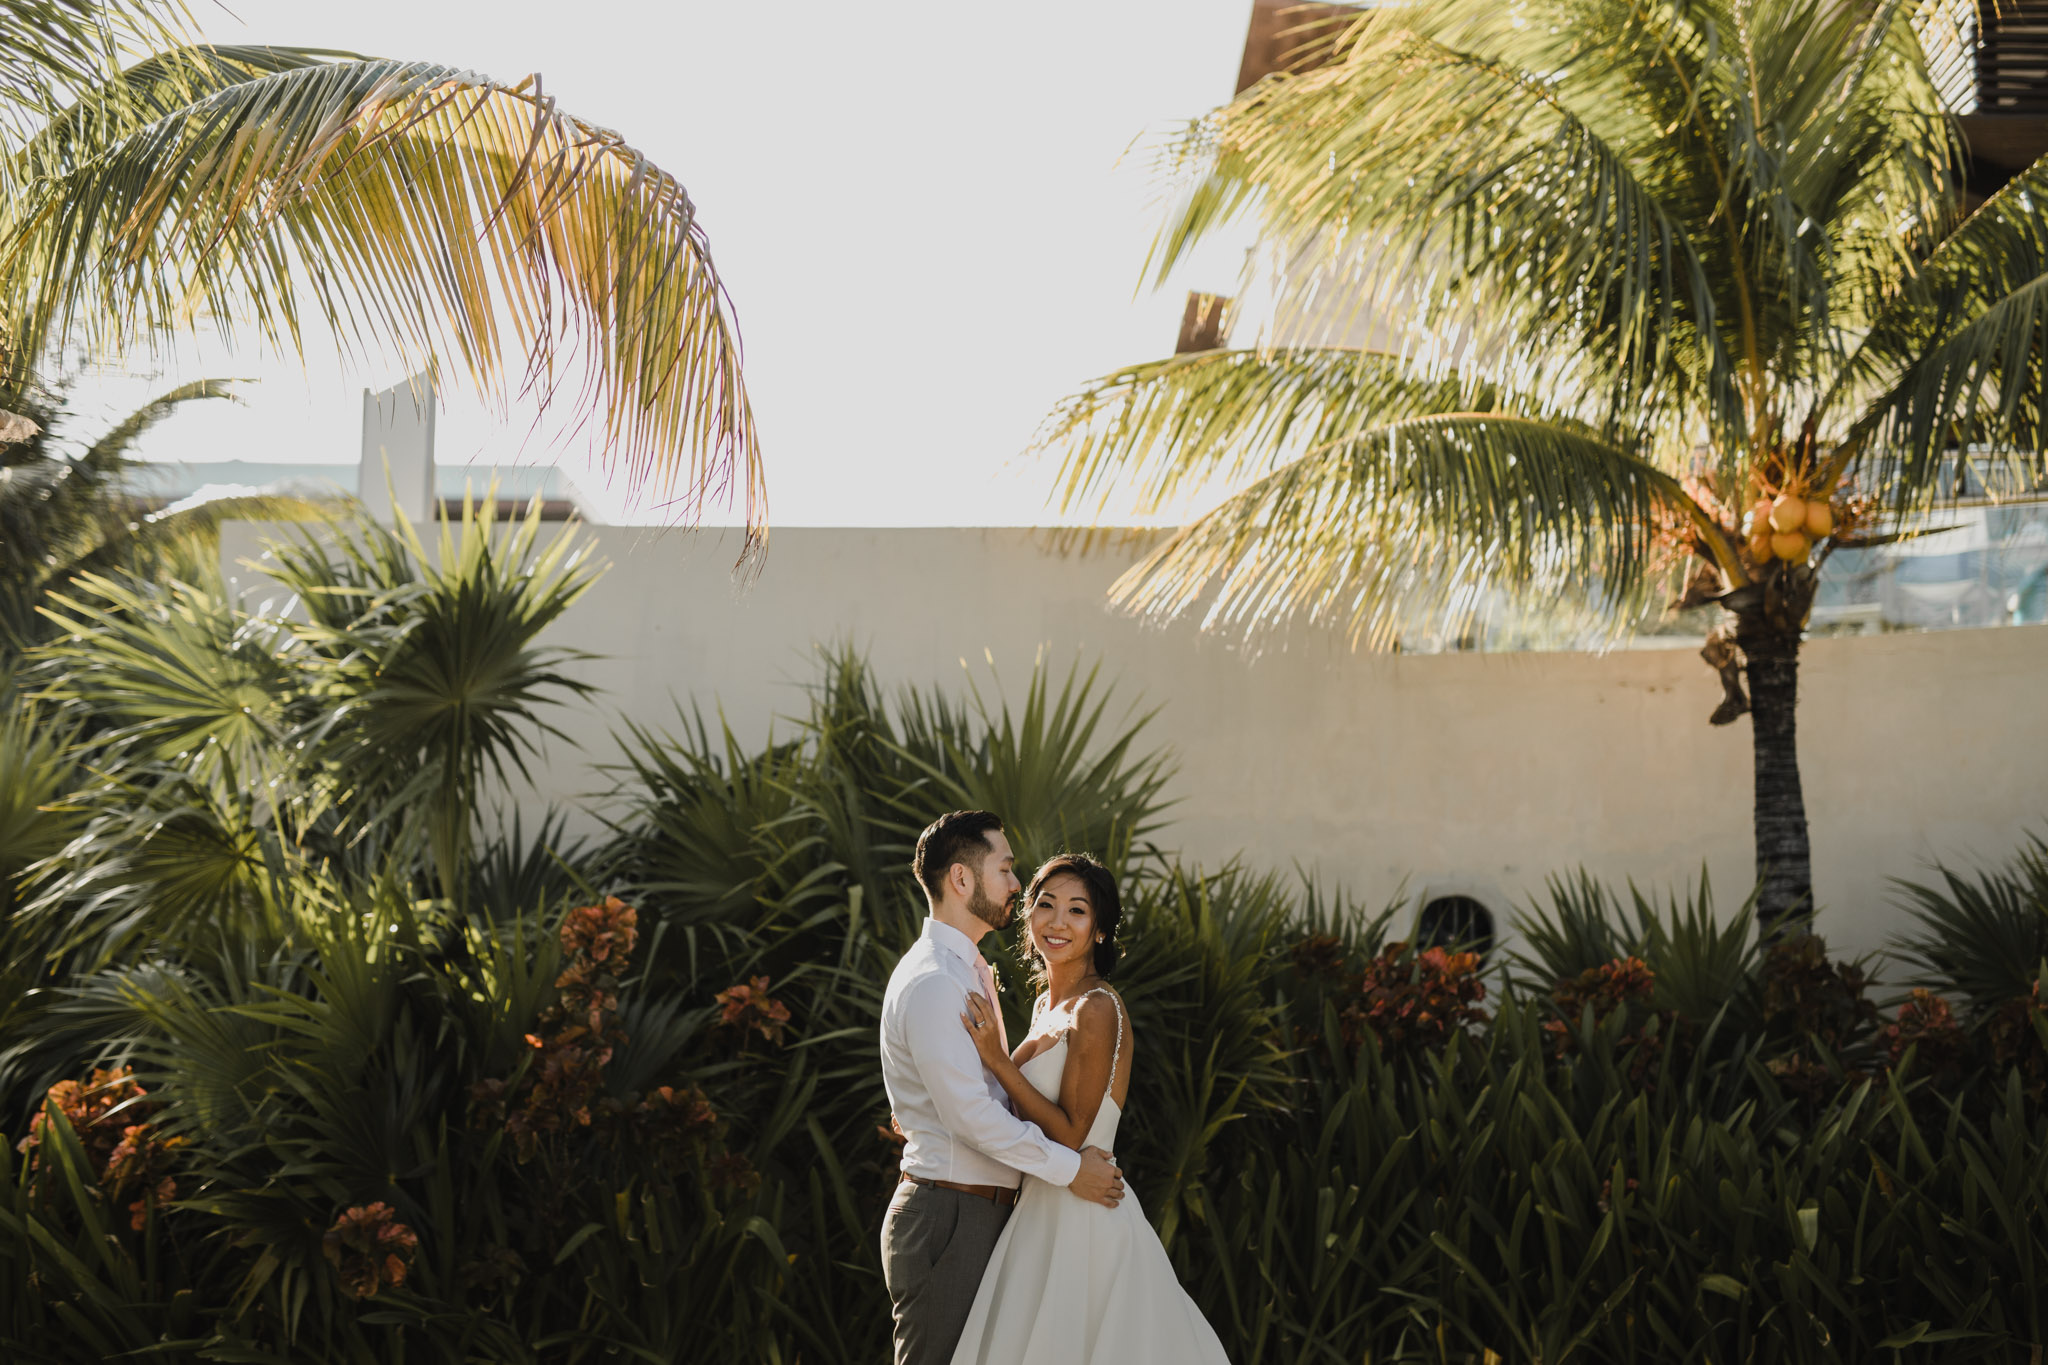 Cancun Mexico Wedding - bride and groom at the resort